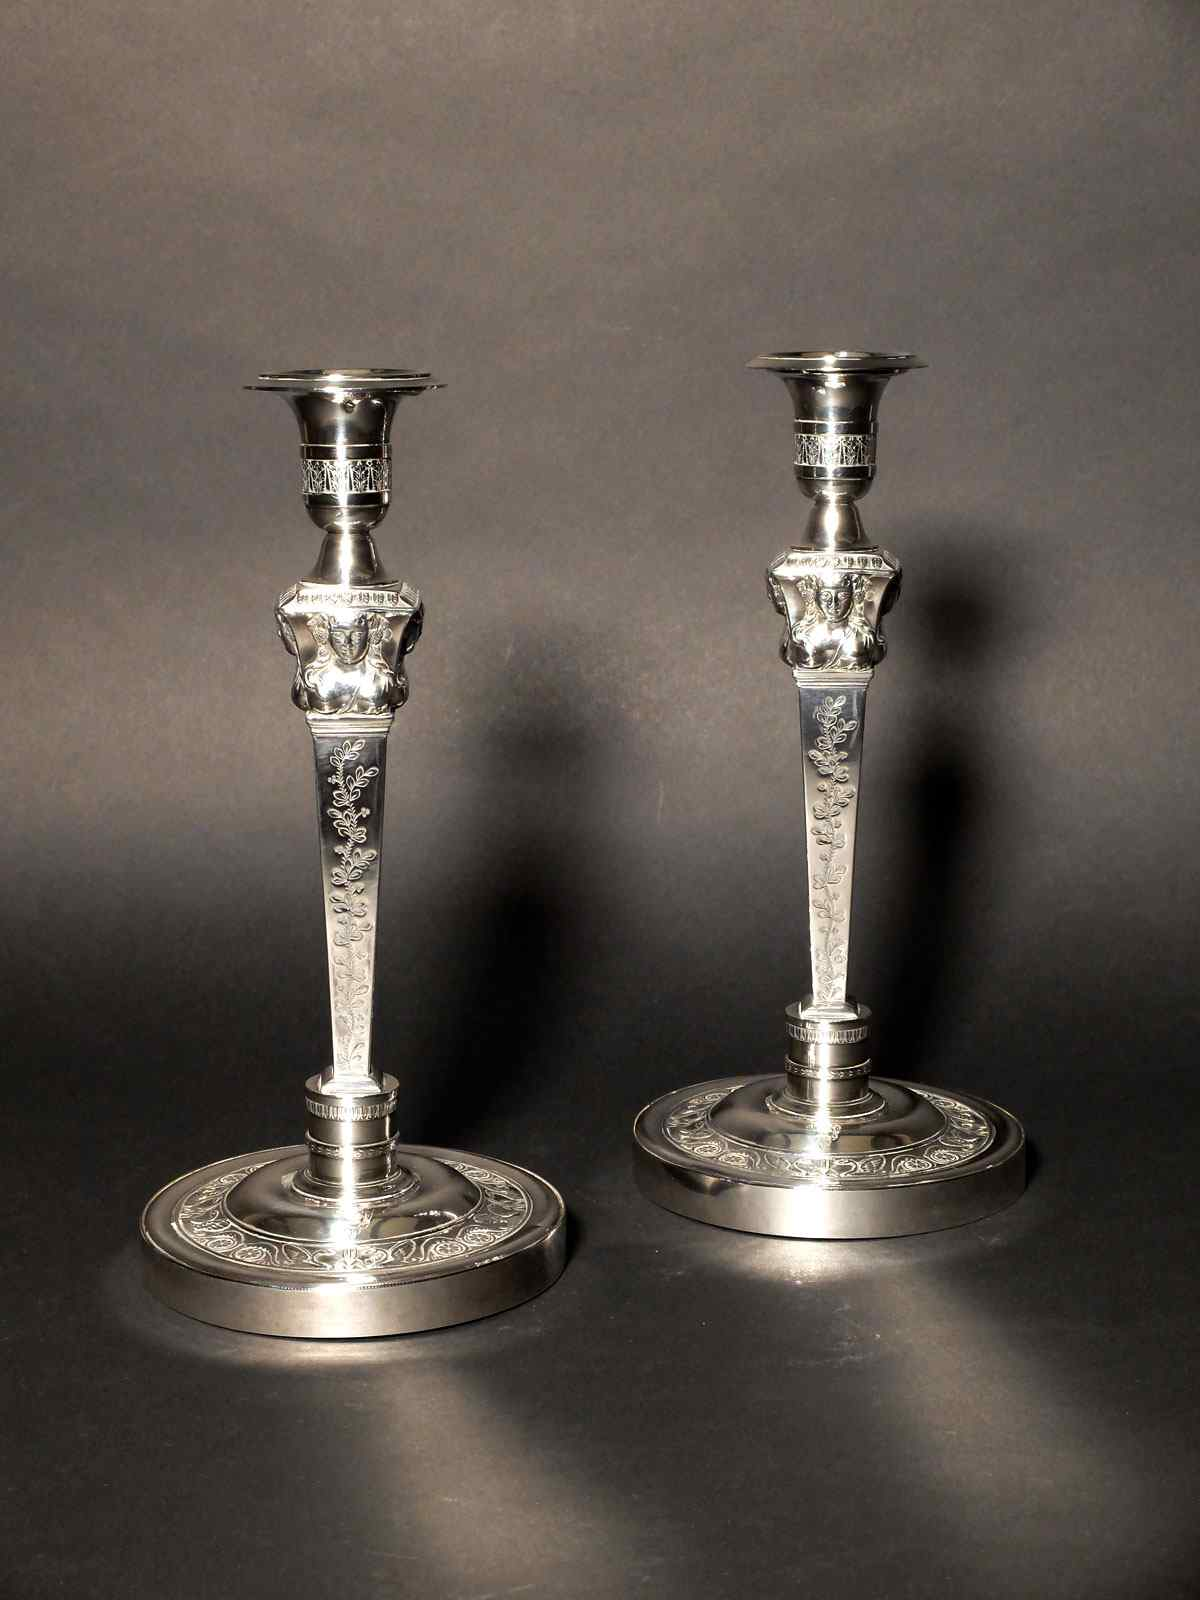 Pair of solid silver candlesticks, with the count's coat of